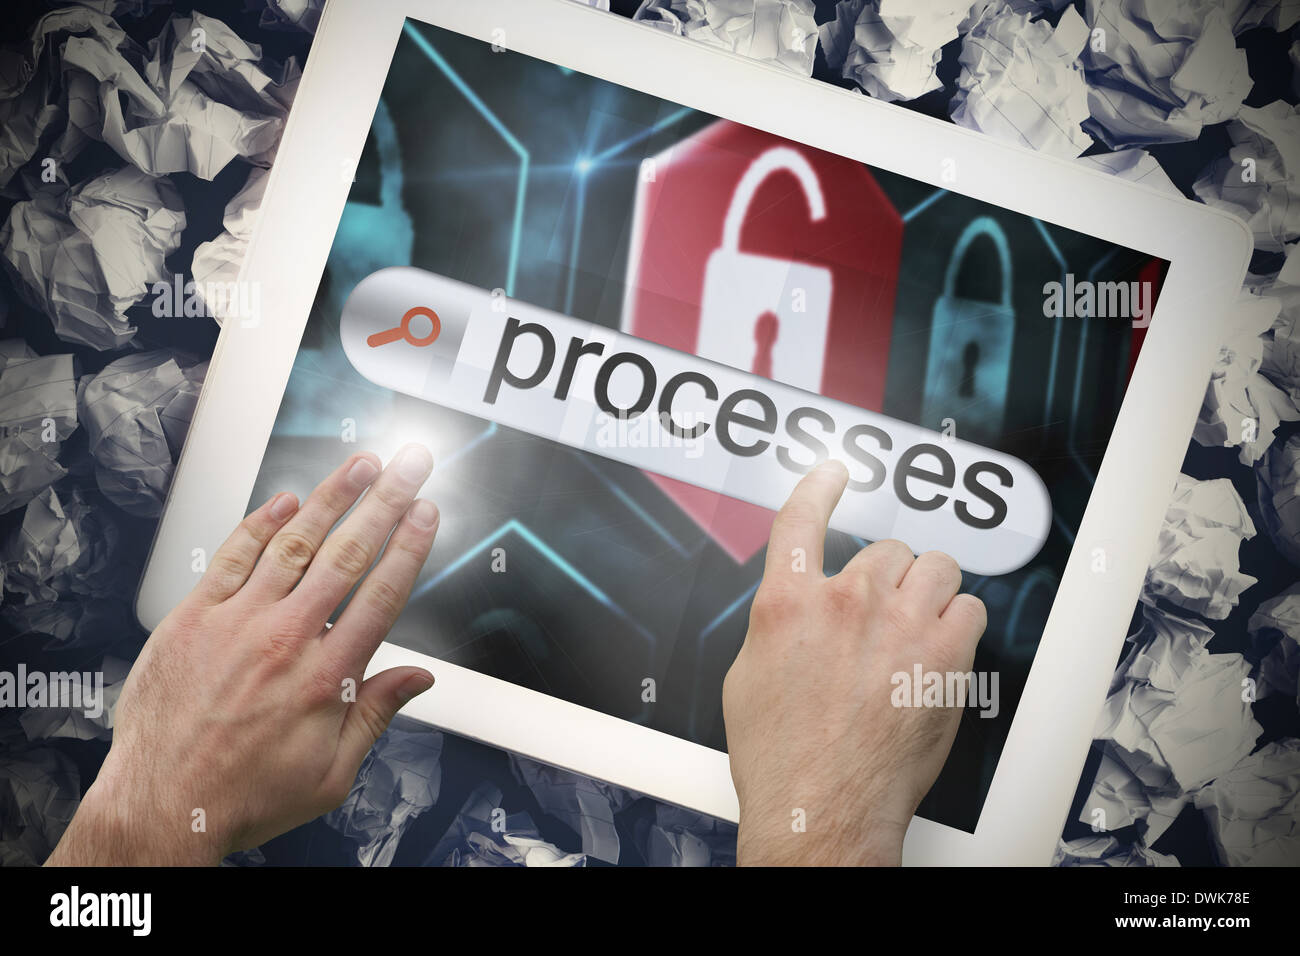 Hand touching processes on search bar on tablet screen - Stock Image